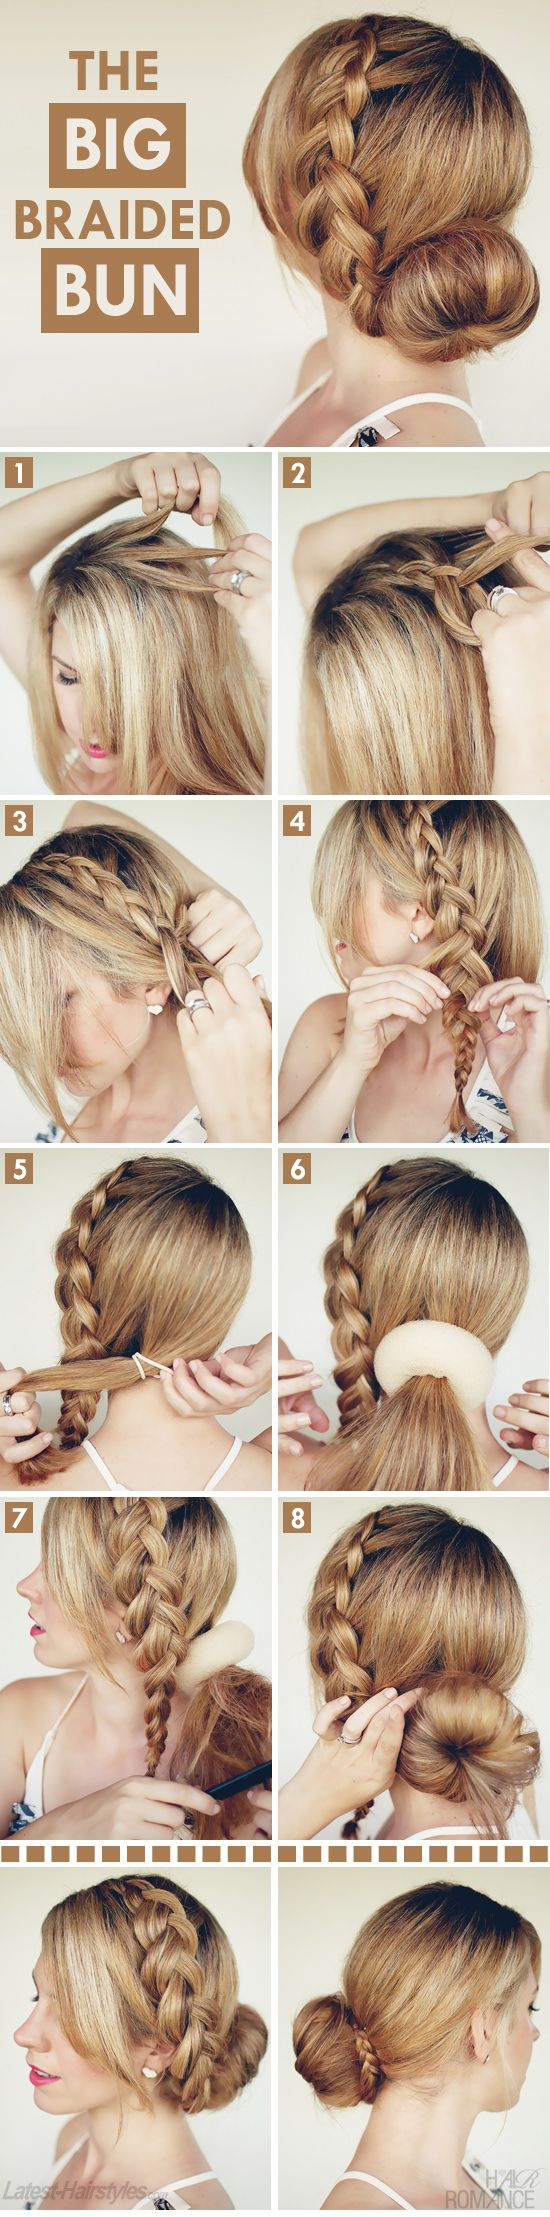 ❤ • #girls • #hair •. #summer • #spring • #style • #fashion • #trend • #hairtutorial • #bun • #braid • #hairstyles • #updo